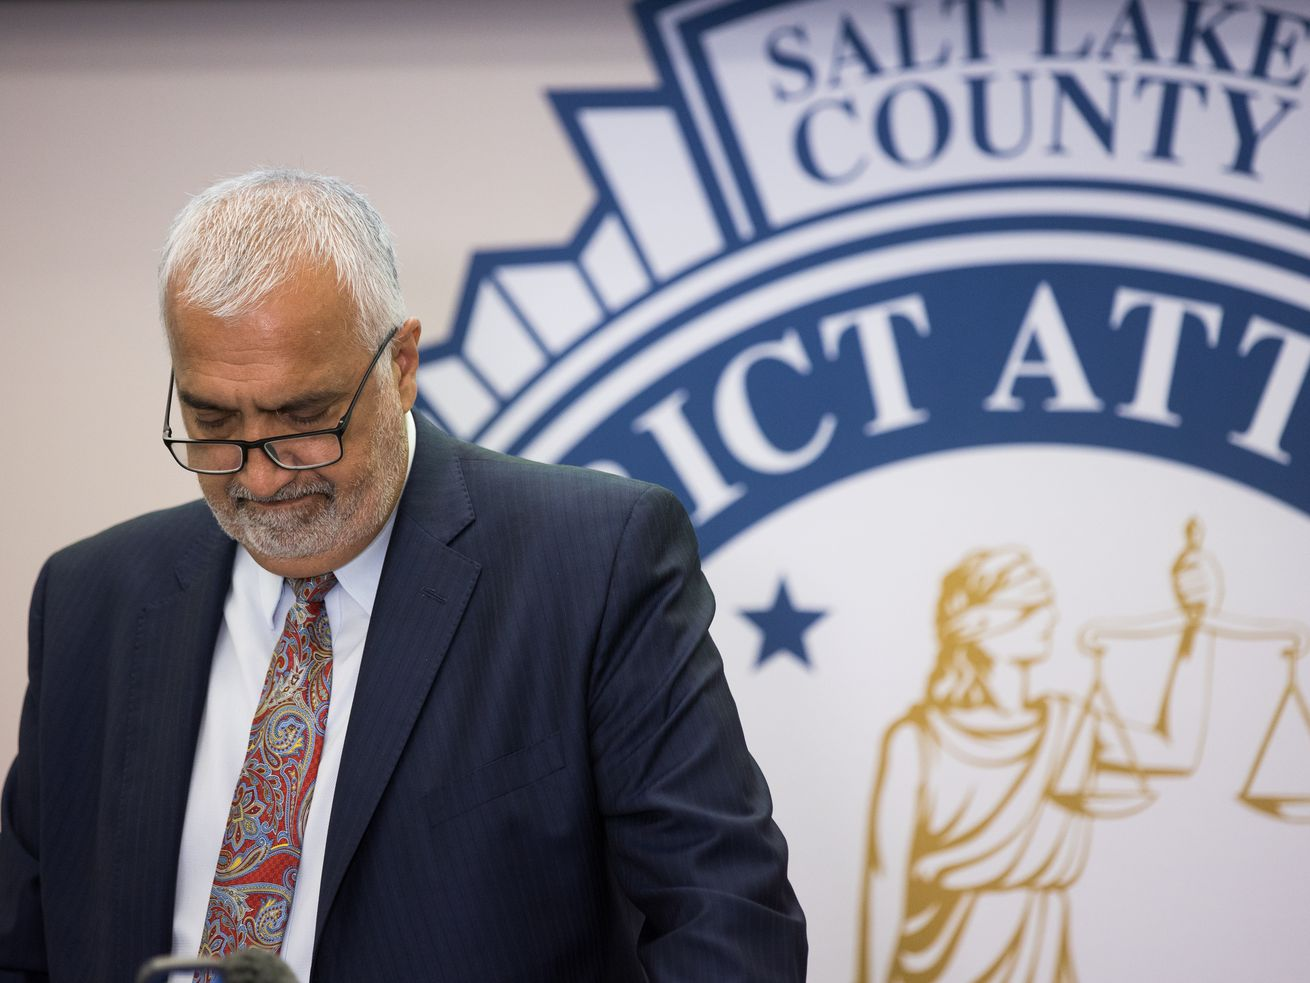 Salt Lake County District Attorney Sim Gill briefs journalists at the District Attorney's Office building in Salt Lake City.